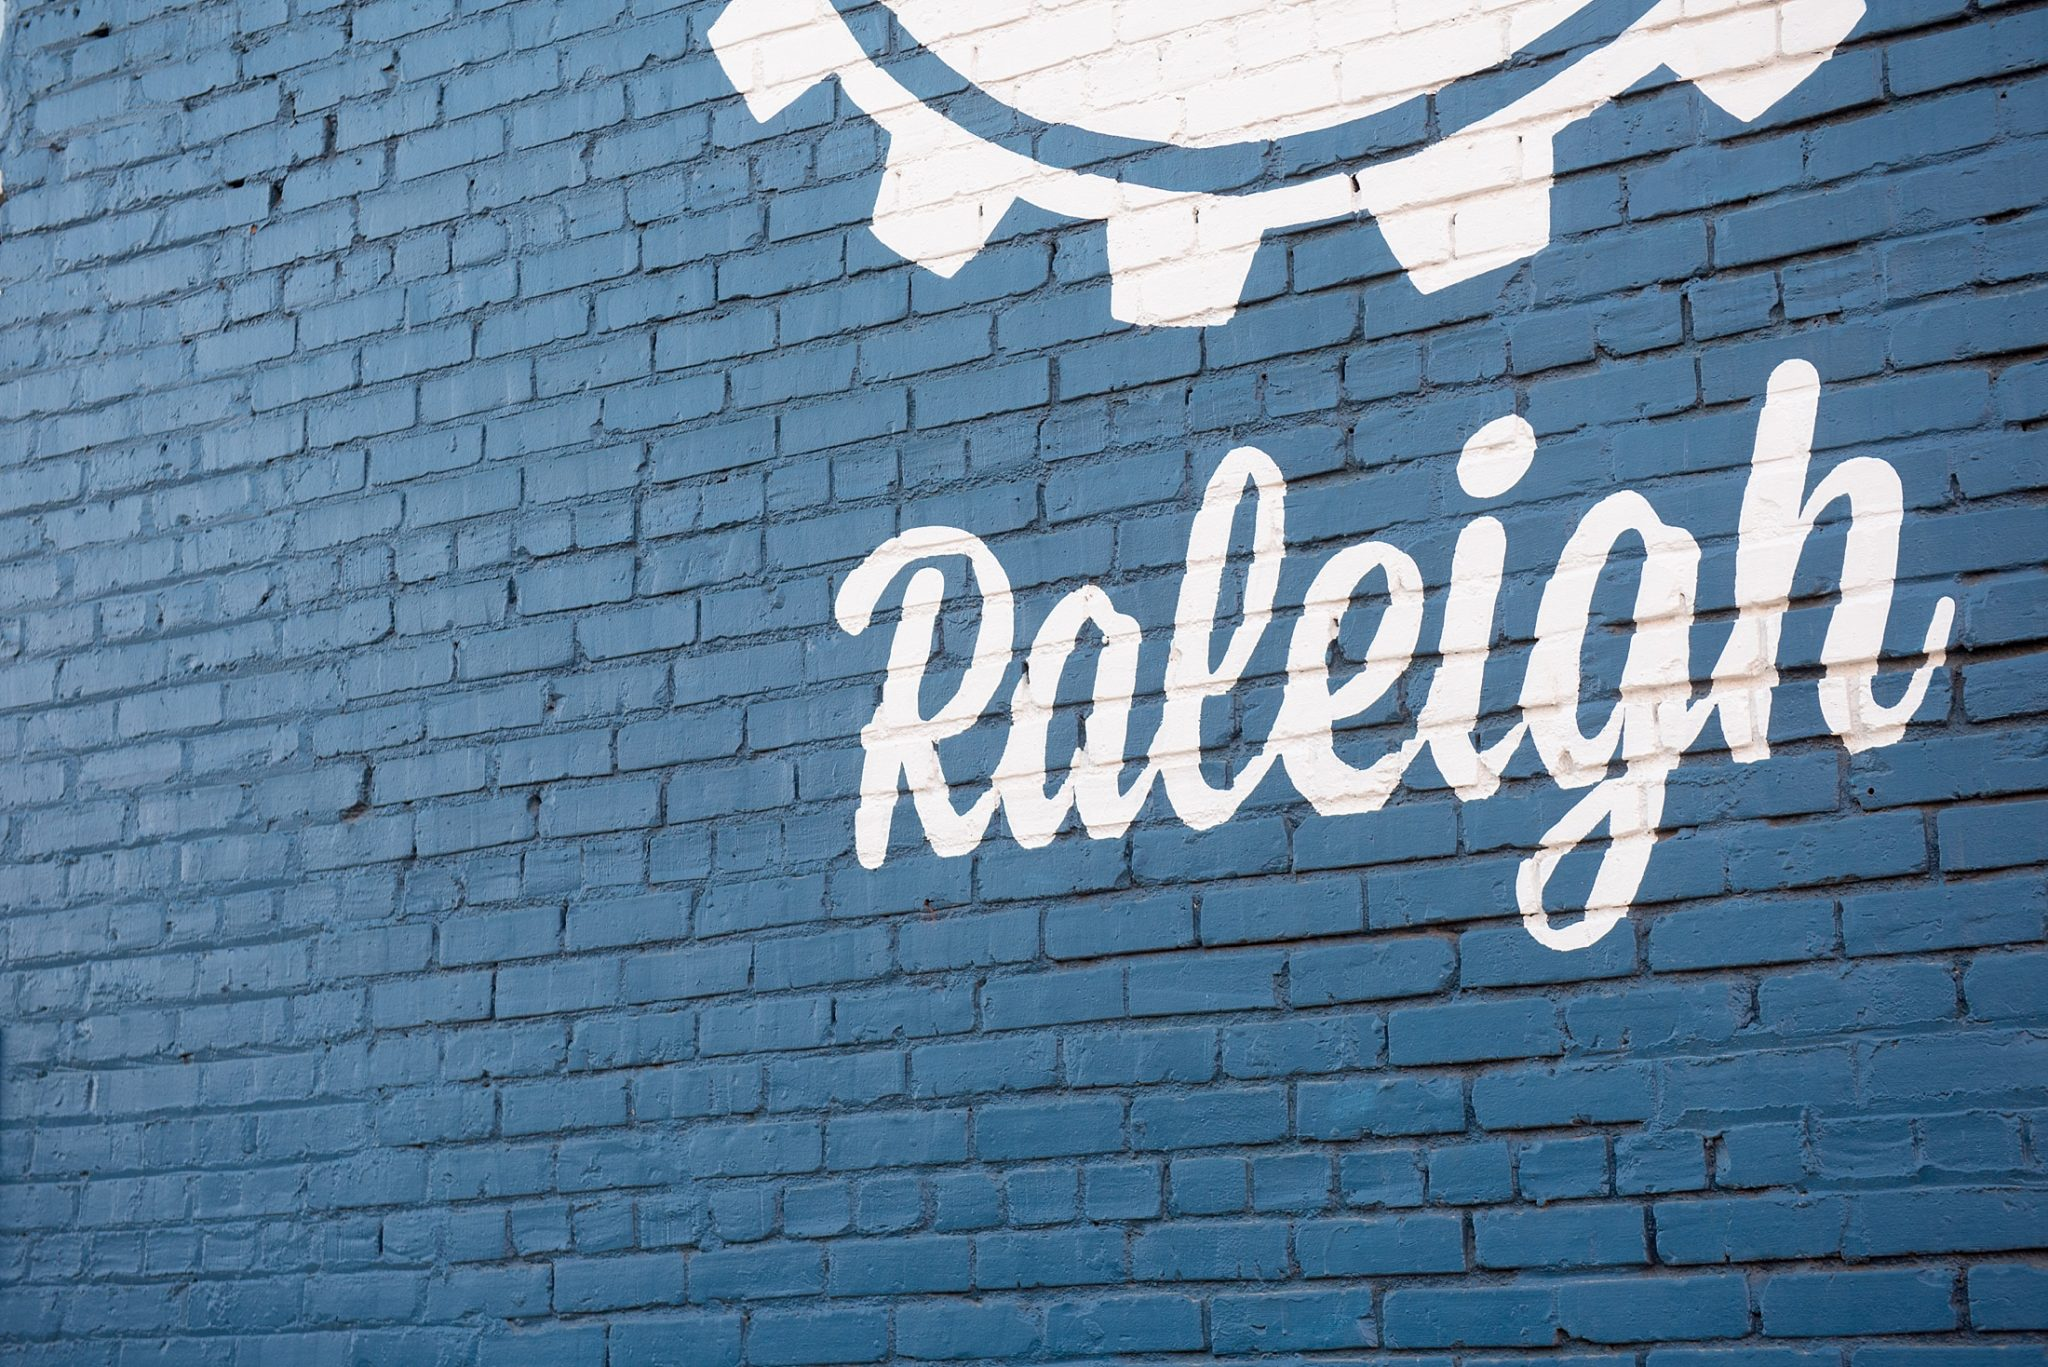 10 Best Downtown Raleigh Photography Spots In North Carolina